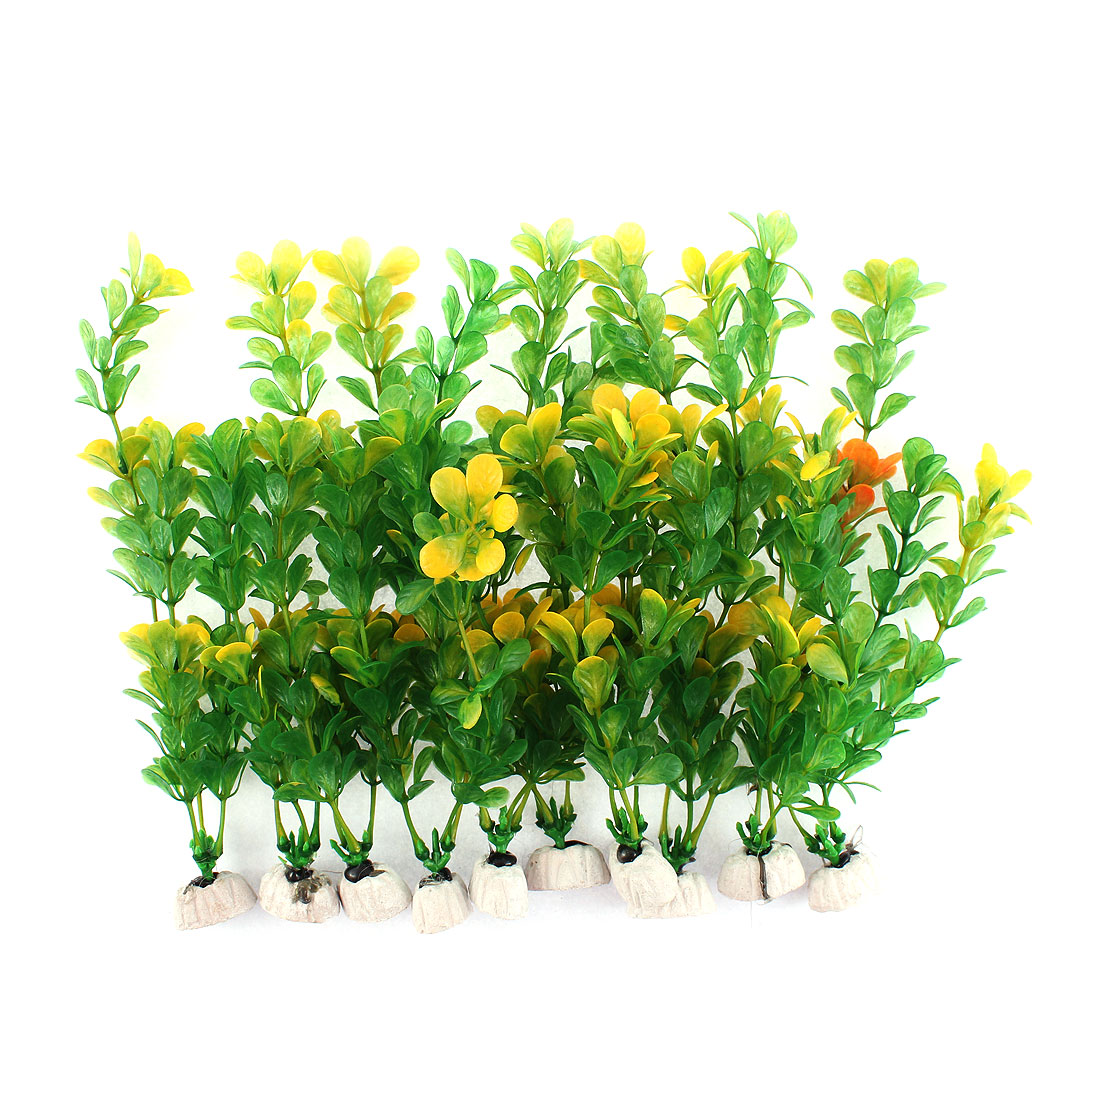 Fish Tank Aquarium Plastic Emulational Water Plant Grass Decor 10 Pcs